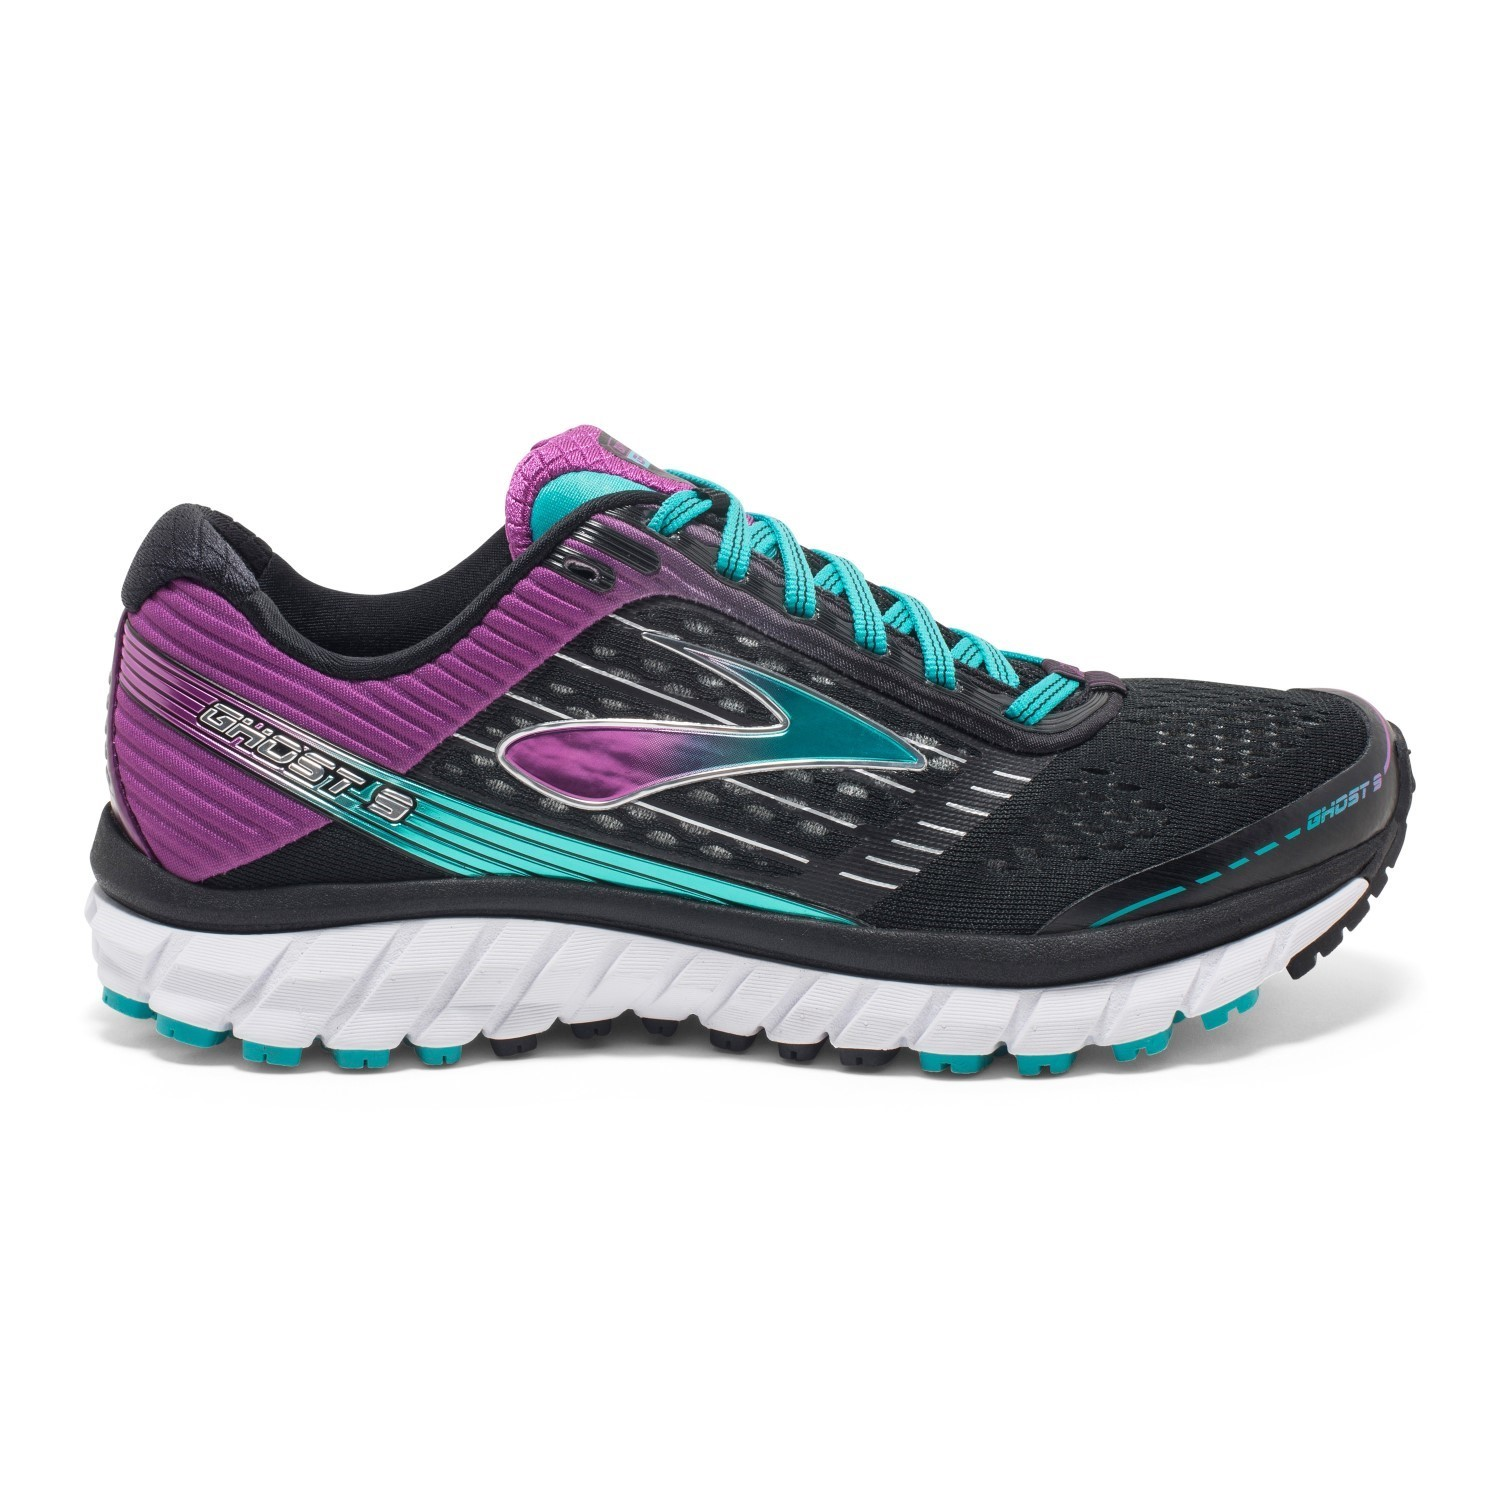 7a757cb77aa4 Brooks Ghost 9 - Womens Running Shoes - Black Sparkling Grape Ceramic